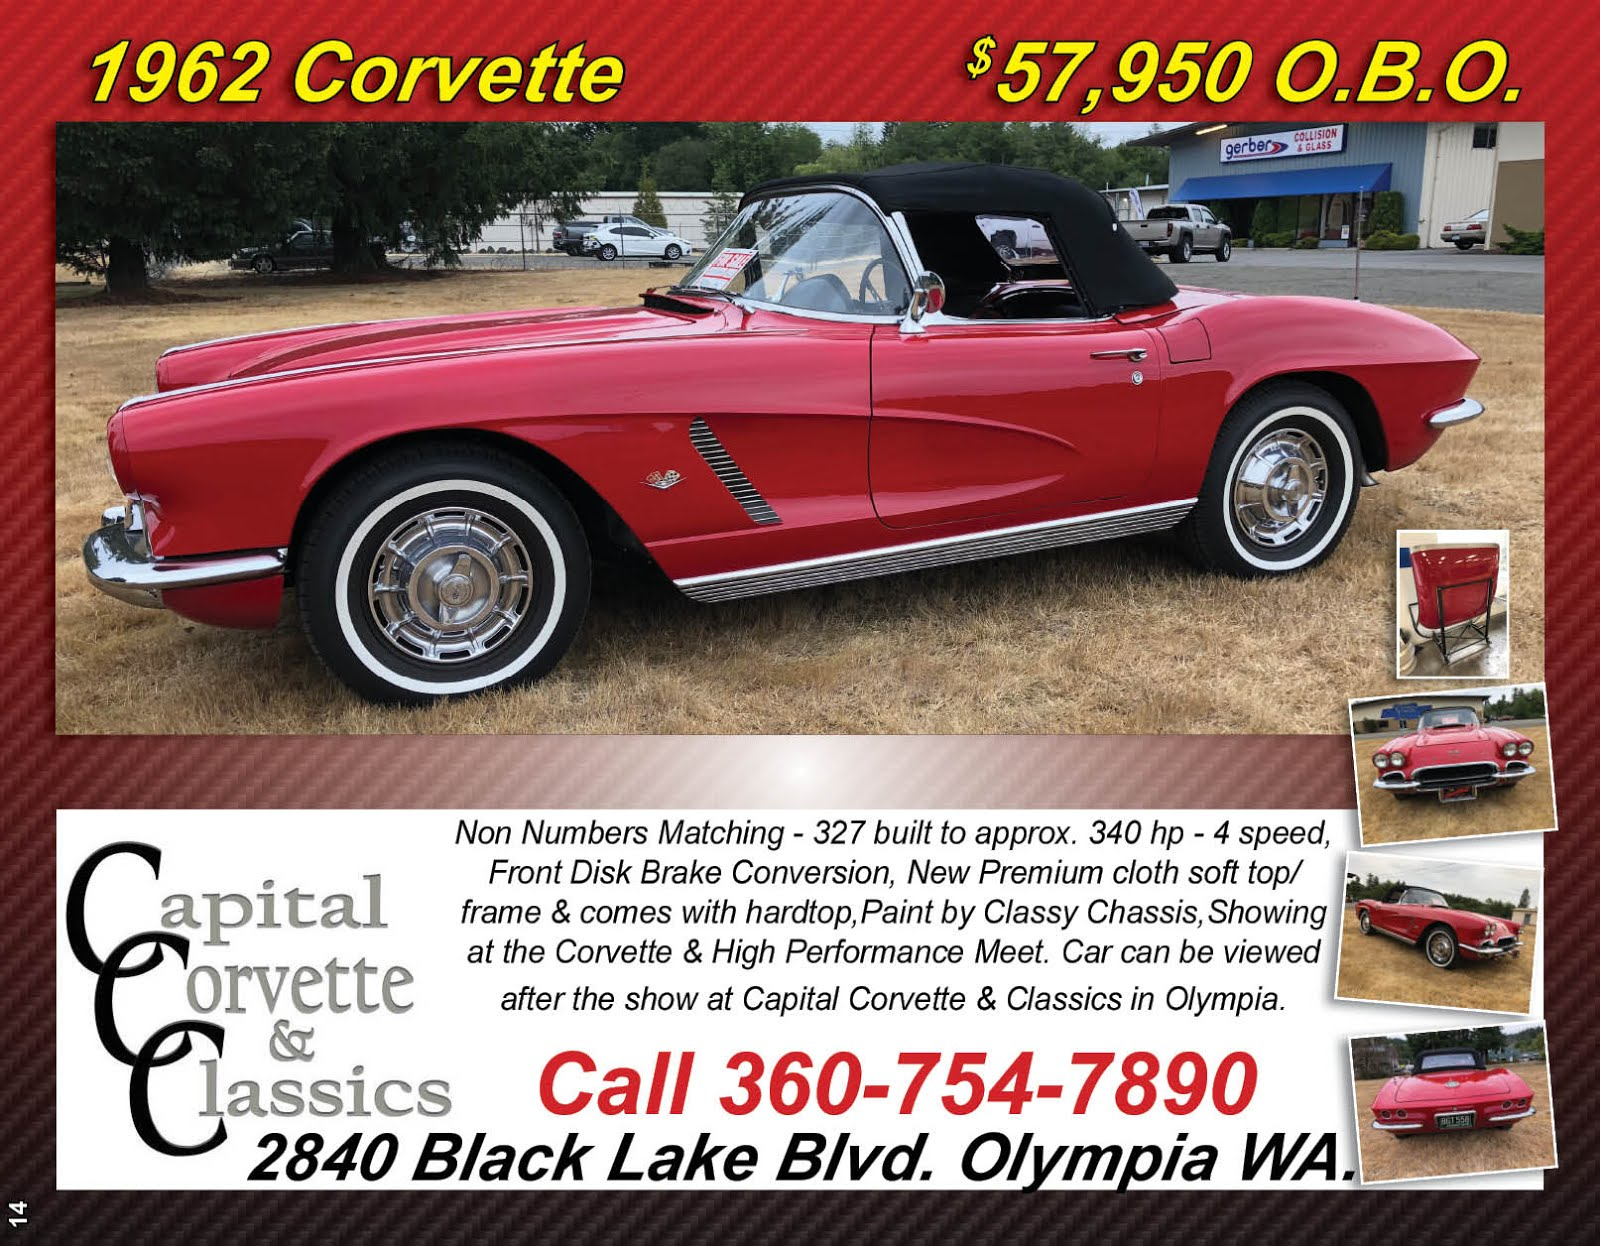 1962 Corvette For Sale @ Capital Corvette & Classics